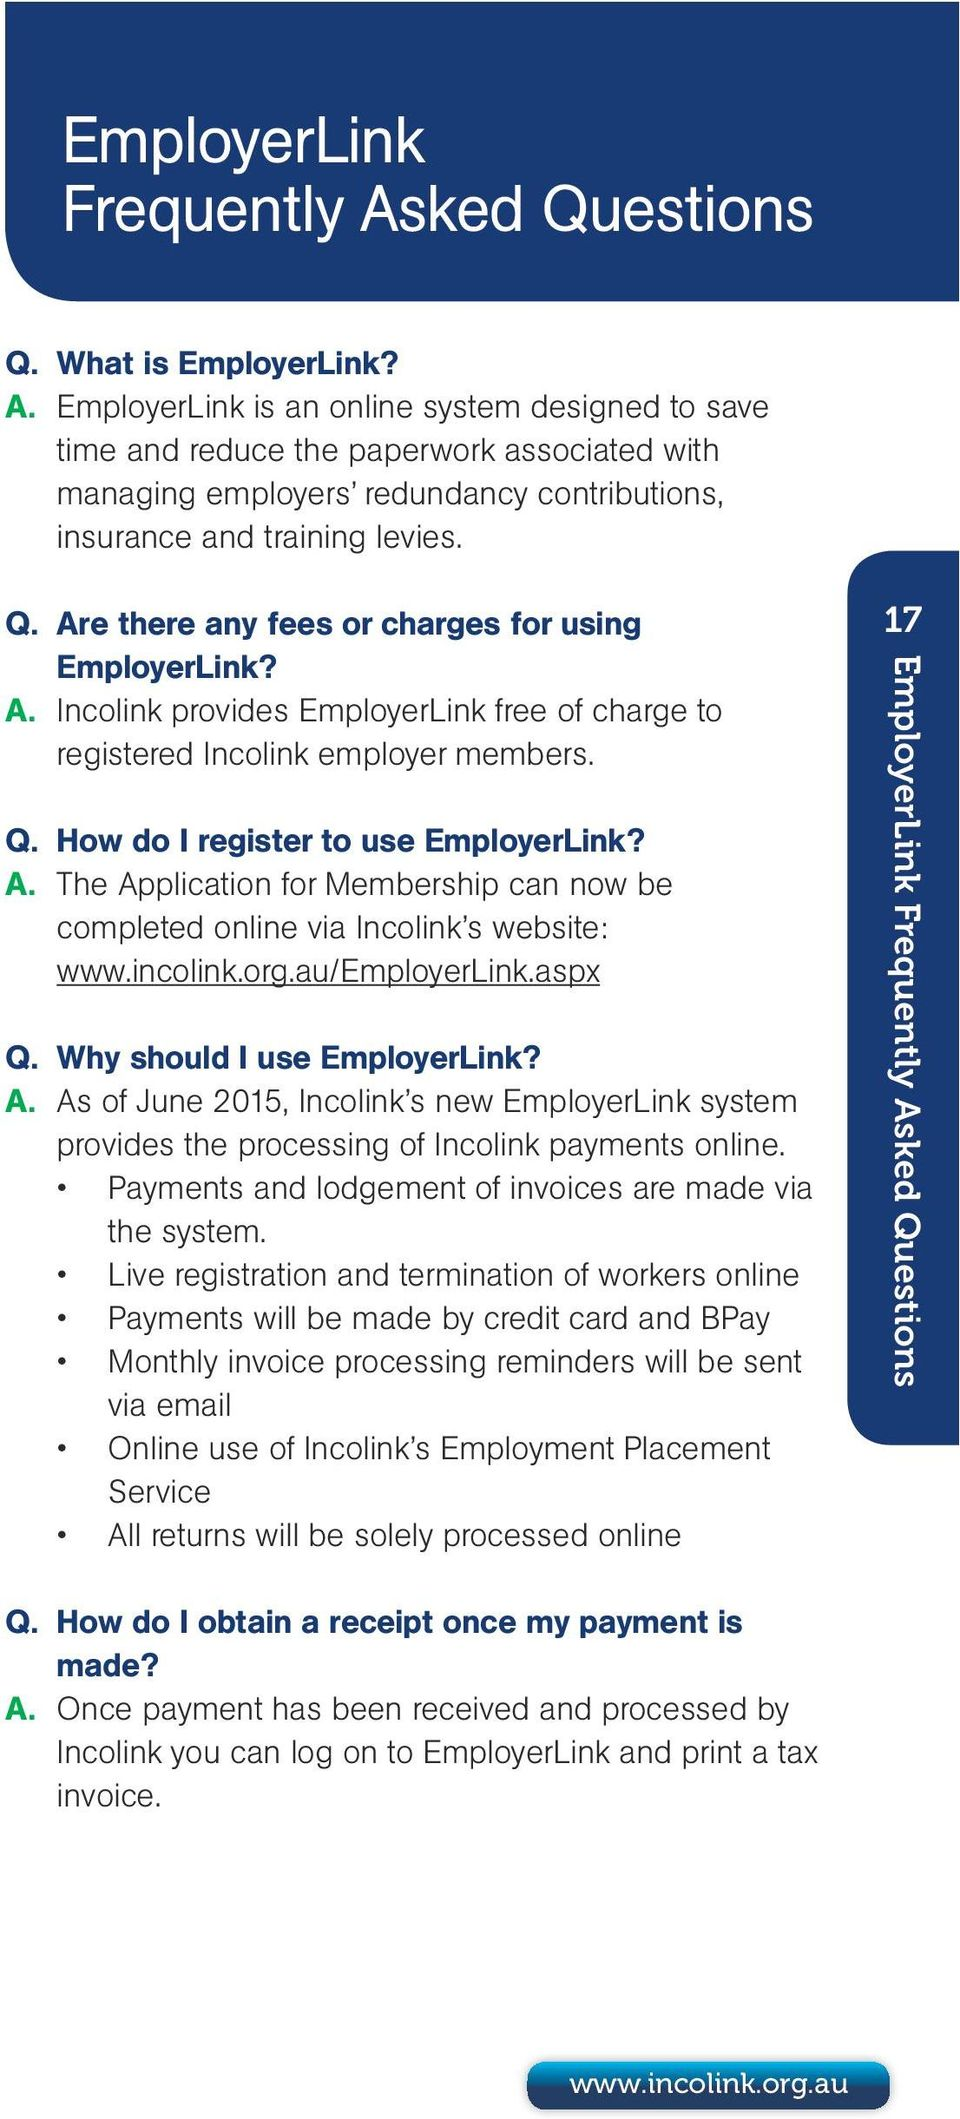 incolink.org.au/employerlink.aspx Q. Why should I use EmployerLink? A. As of June 2015, Incolink s new EmployerLink system provides the processing of Incolink payments online.